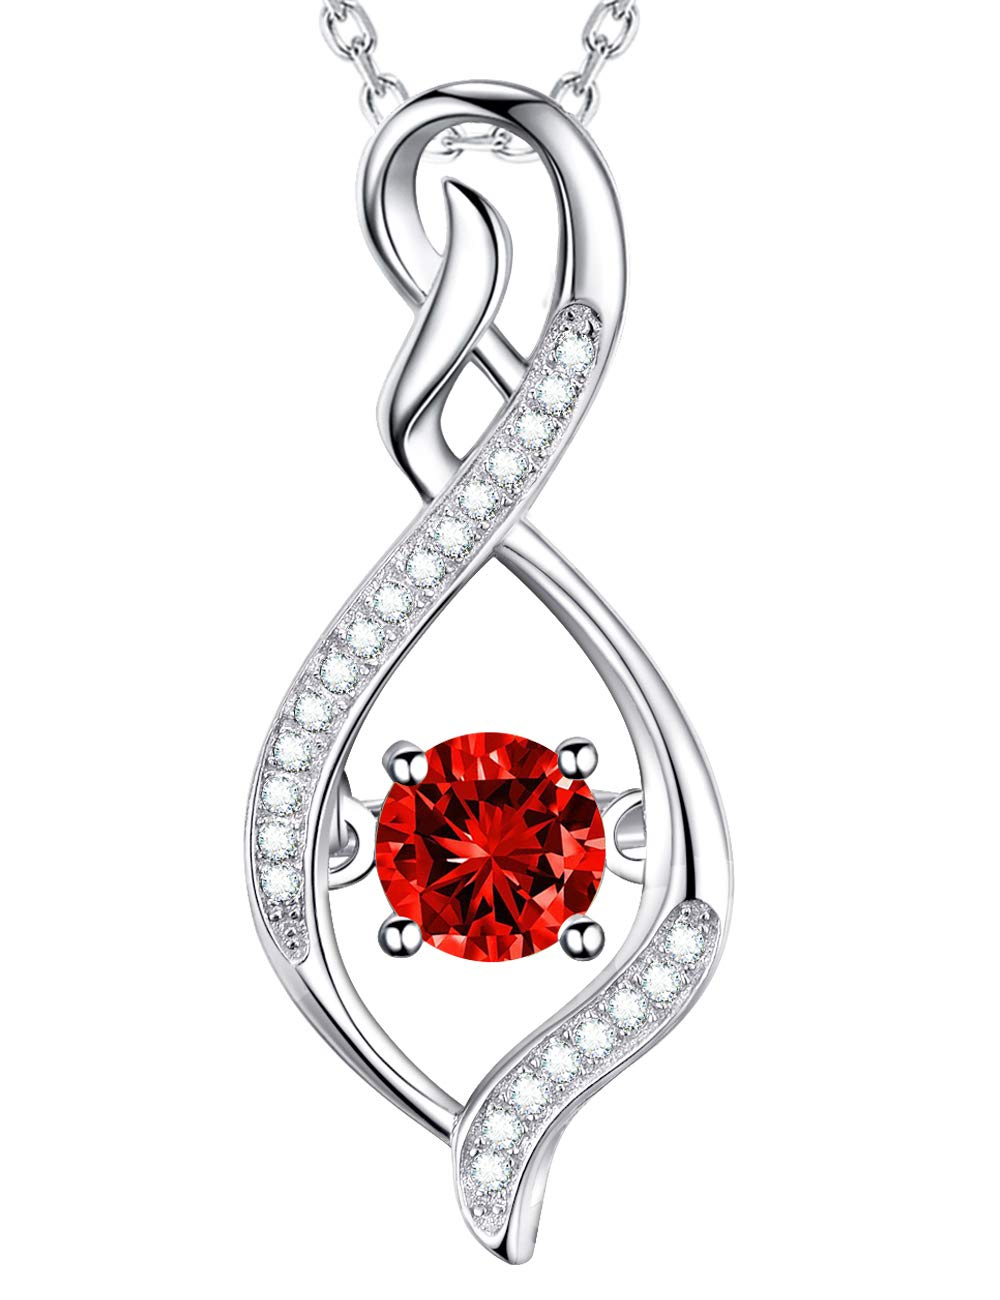 Elda&Co July Birthstone created Ruby Necklace Sterling Silver Forever Love Intinity Pendant Necklace for Women Teen Girls Birthday Gifts Anniversary Gifts for Her